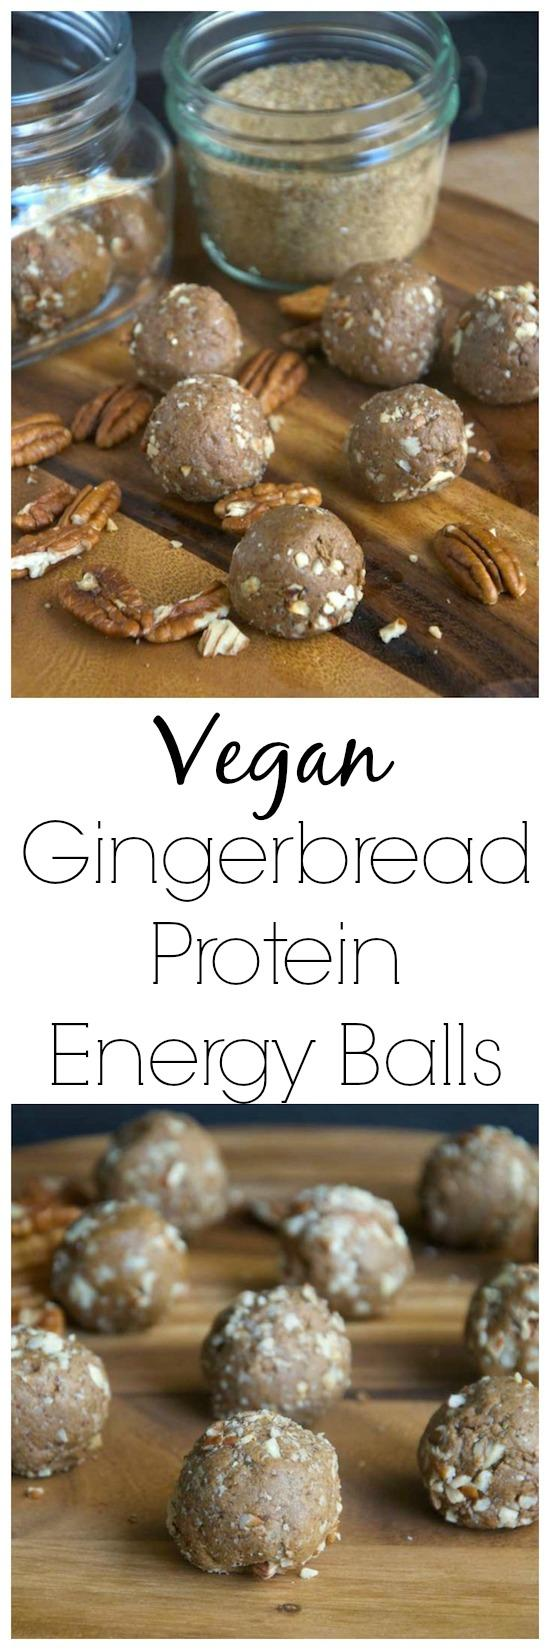 These Vegan Gingerbread Protein Balls are simple and nutritious and make a great snack, workout fuel or dessert!